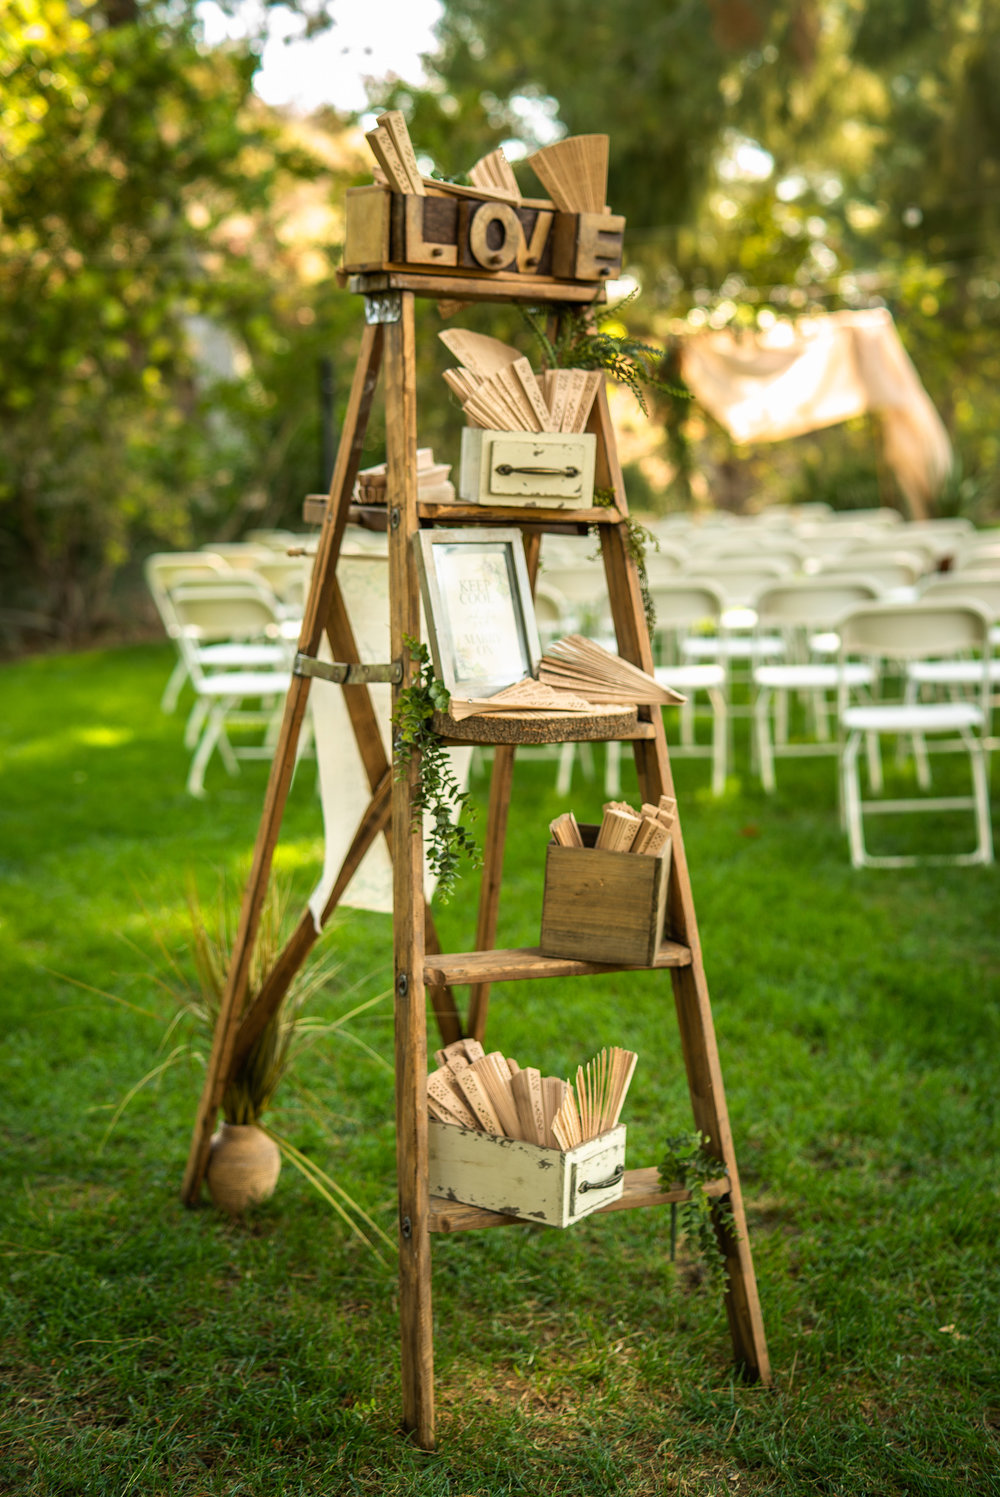 Styling & Set-up:  Eyesome Events     |   Signage:  Unshakably Unique     |   Ladder:  Ten Four Decor     |   Photo:   Super Million Visuals